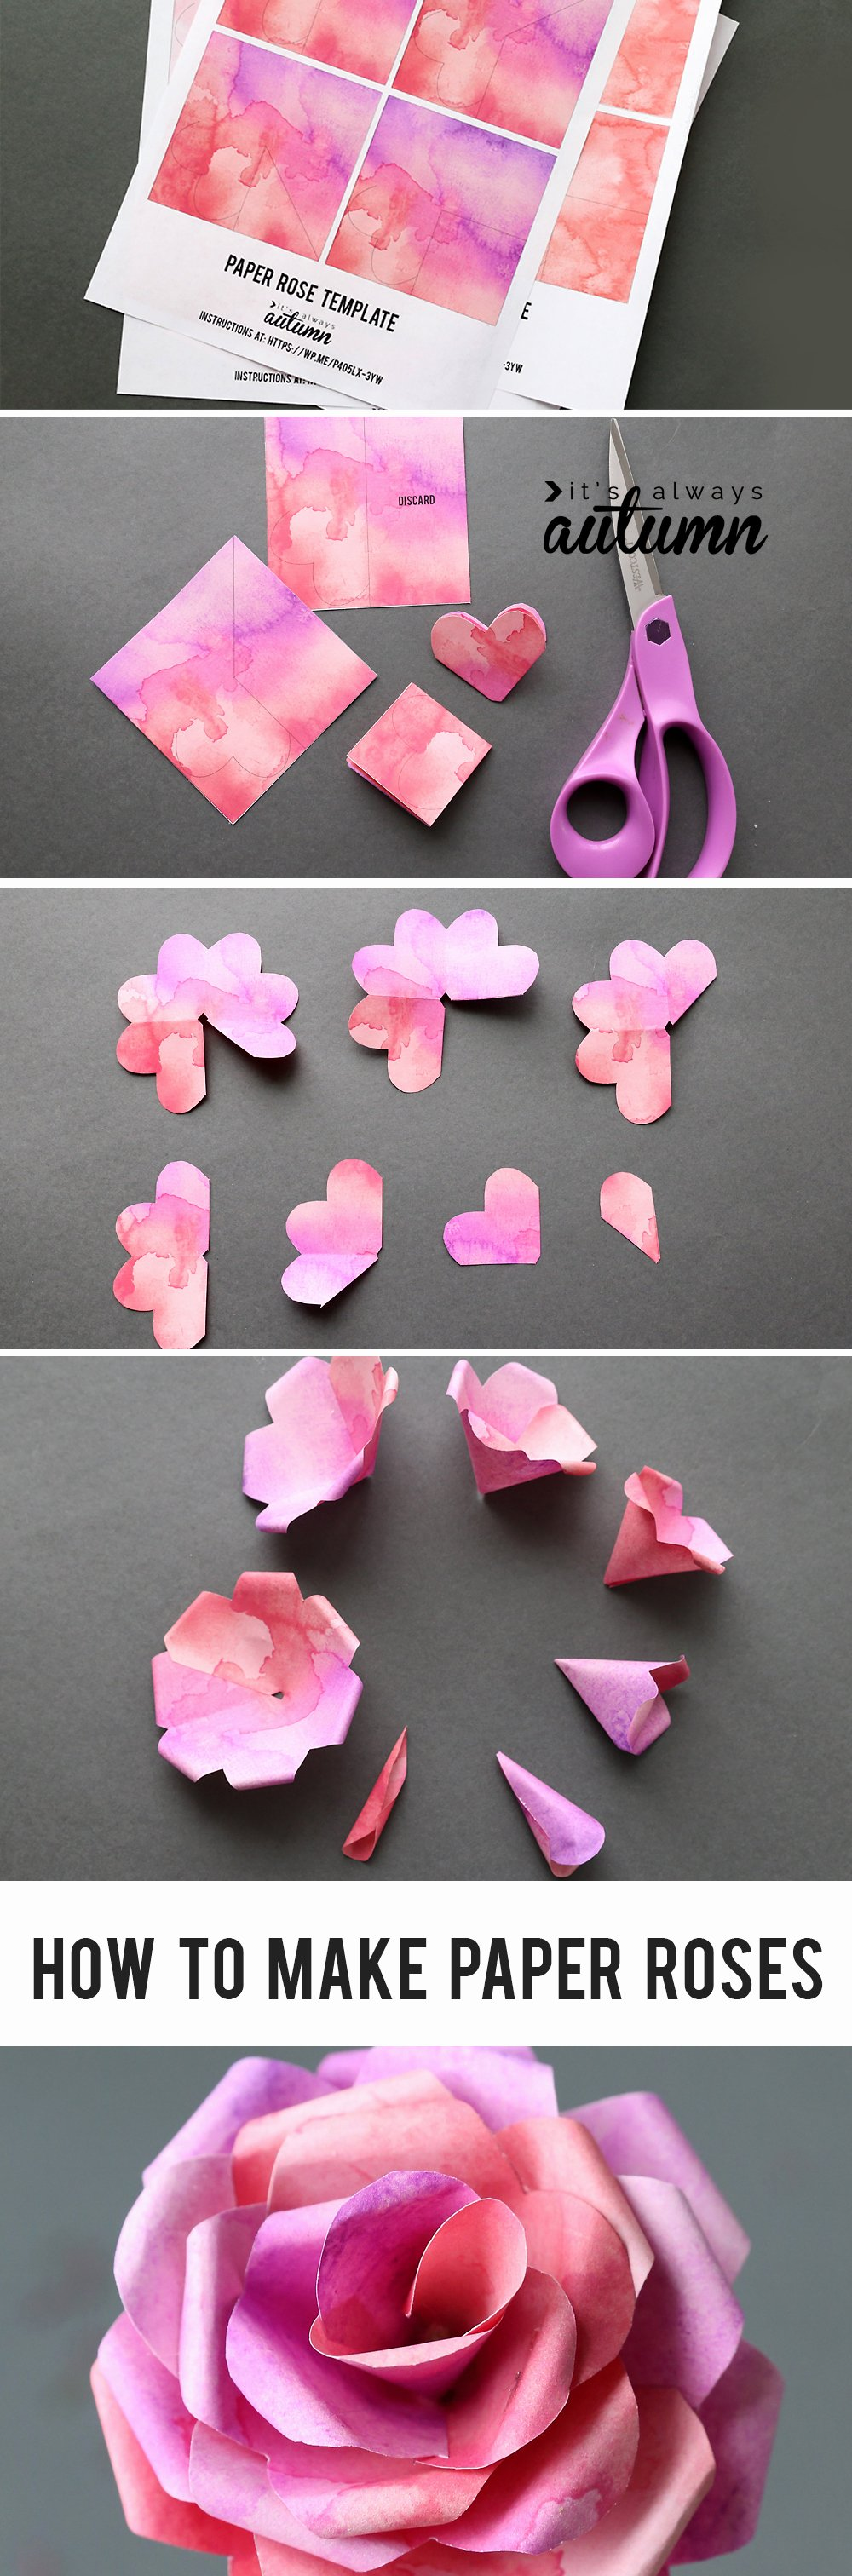 Diy Paper Flower Template Beautiful Make Gorgeous Paper Roses with This Free Paper Rose